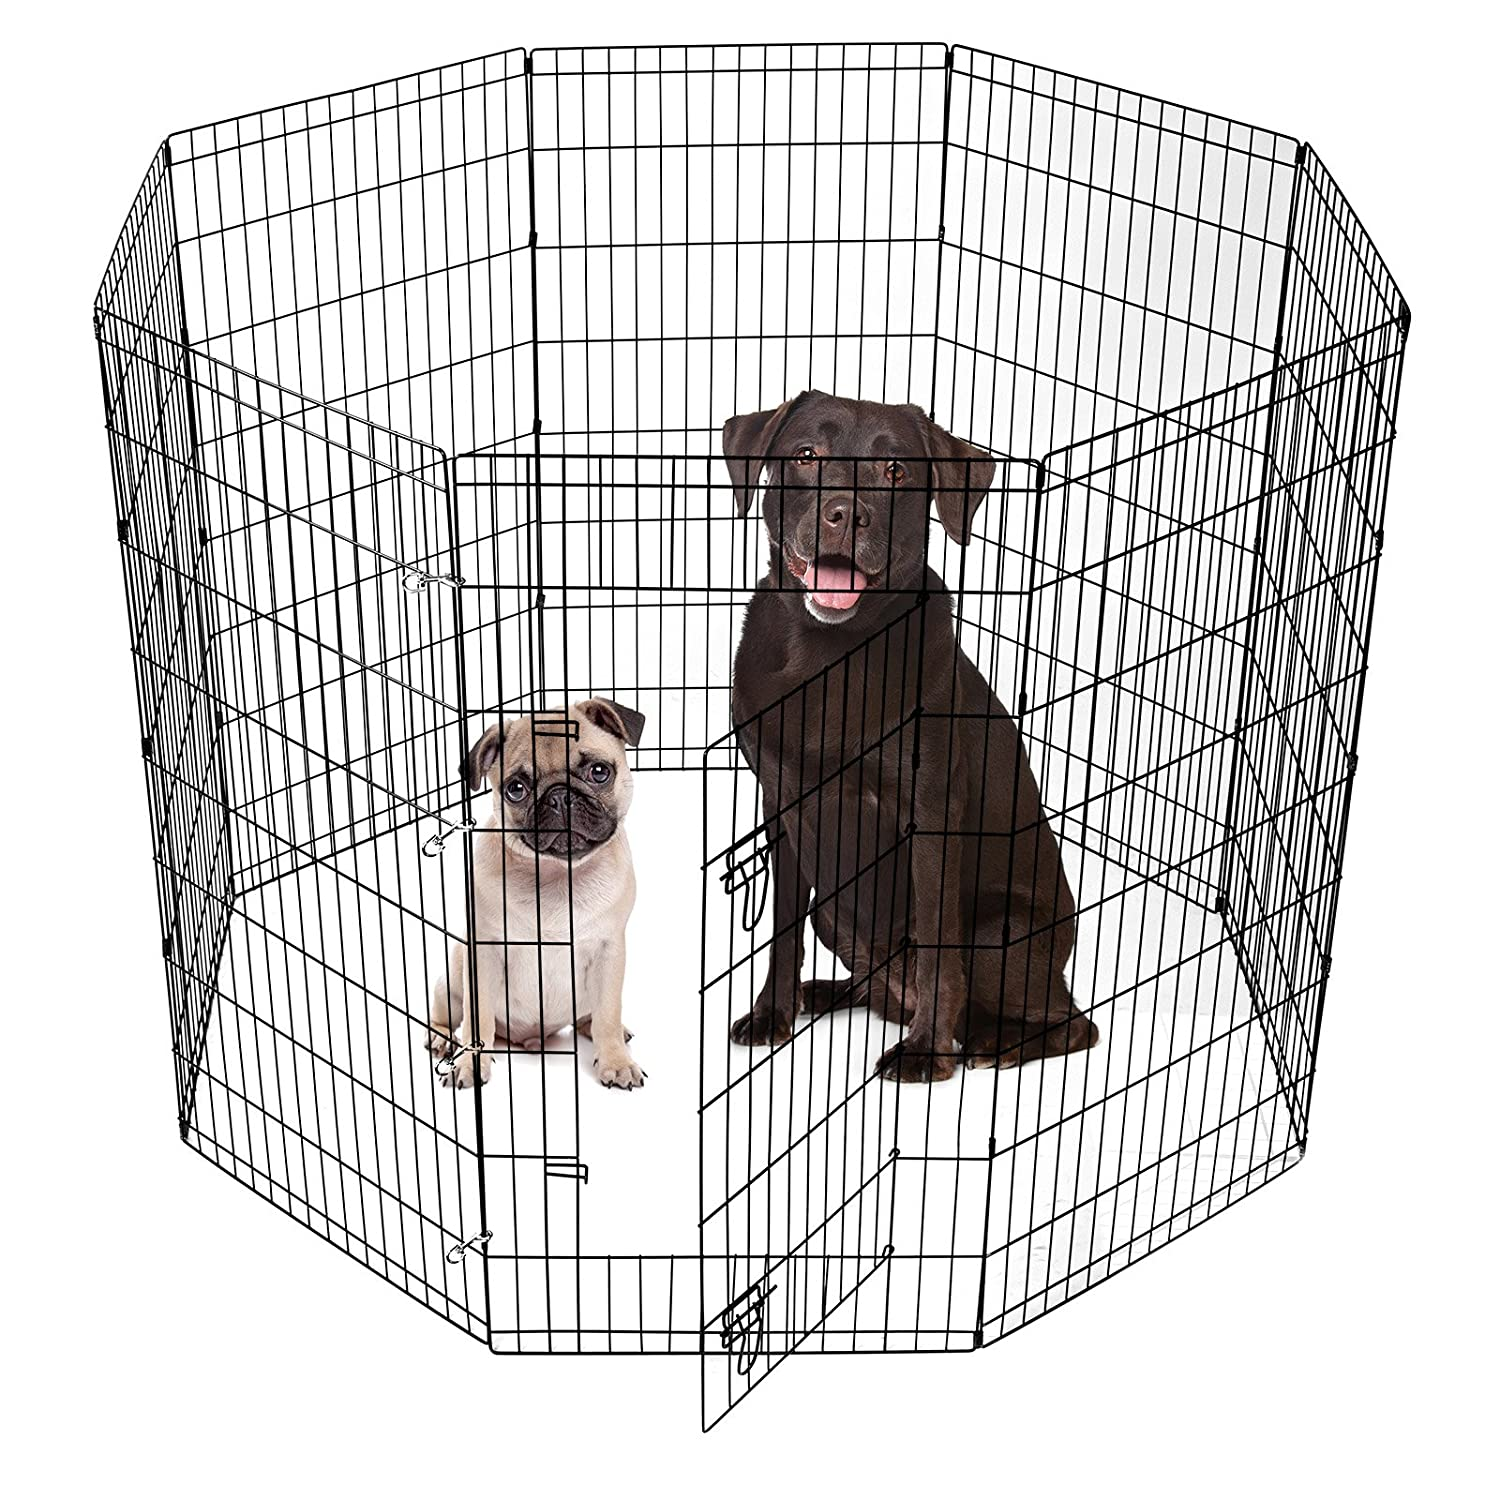 Amazon.com : SmithBuilt Crates Dog Playpen Folding Yard With Door And Carry  Bag 8 Panel Metal Wire Popup Portable Fence, 48 Inch High   Black : Outdoor  Pet ...